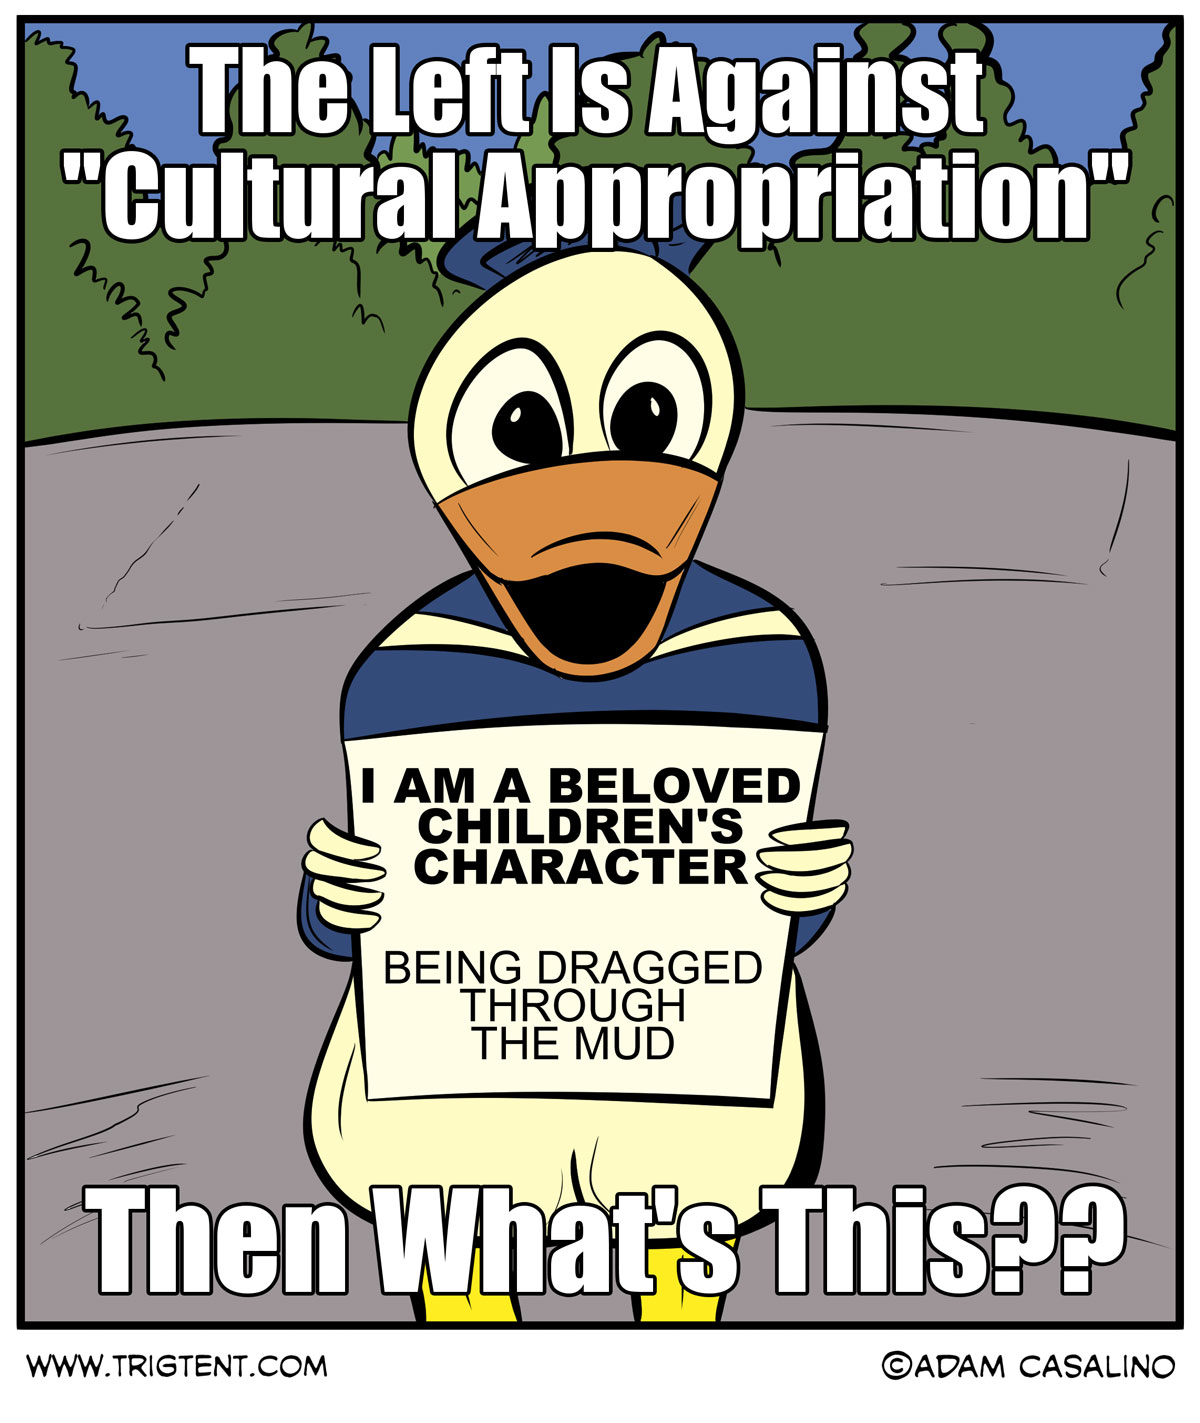 Cultural Appropriation?